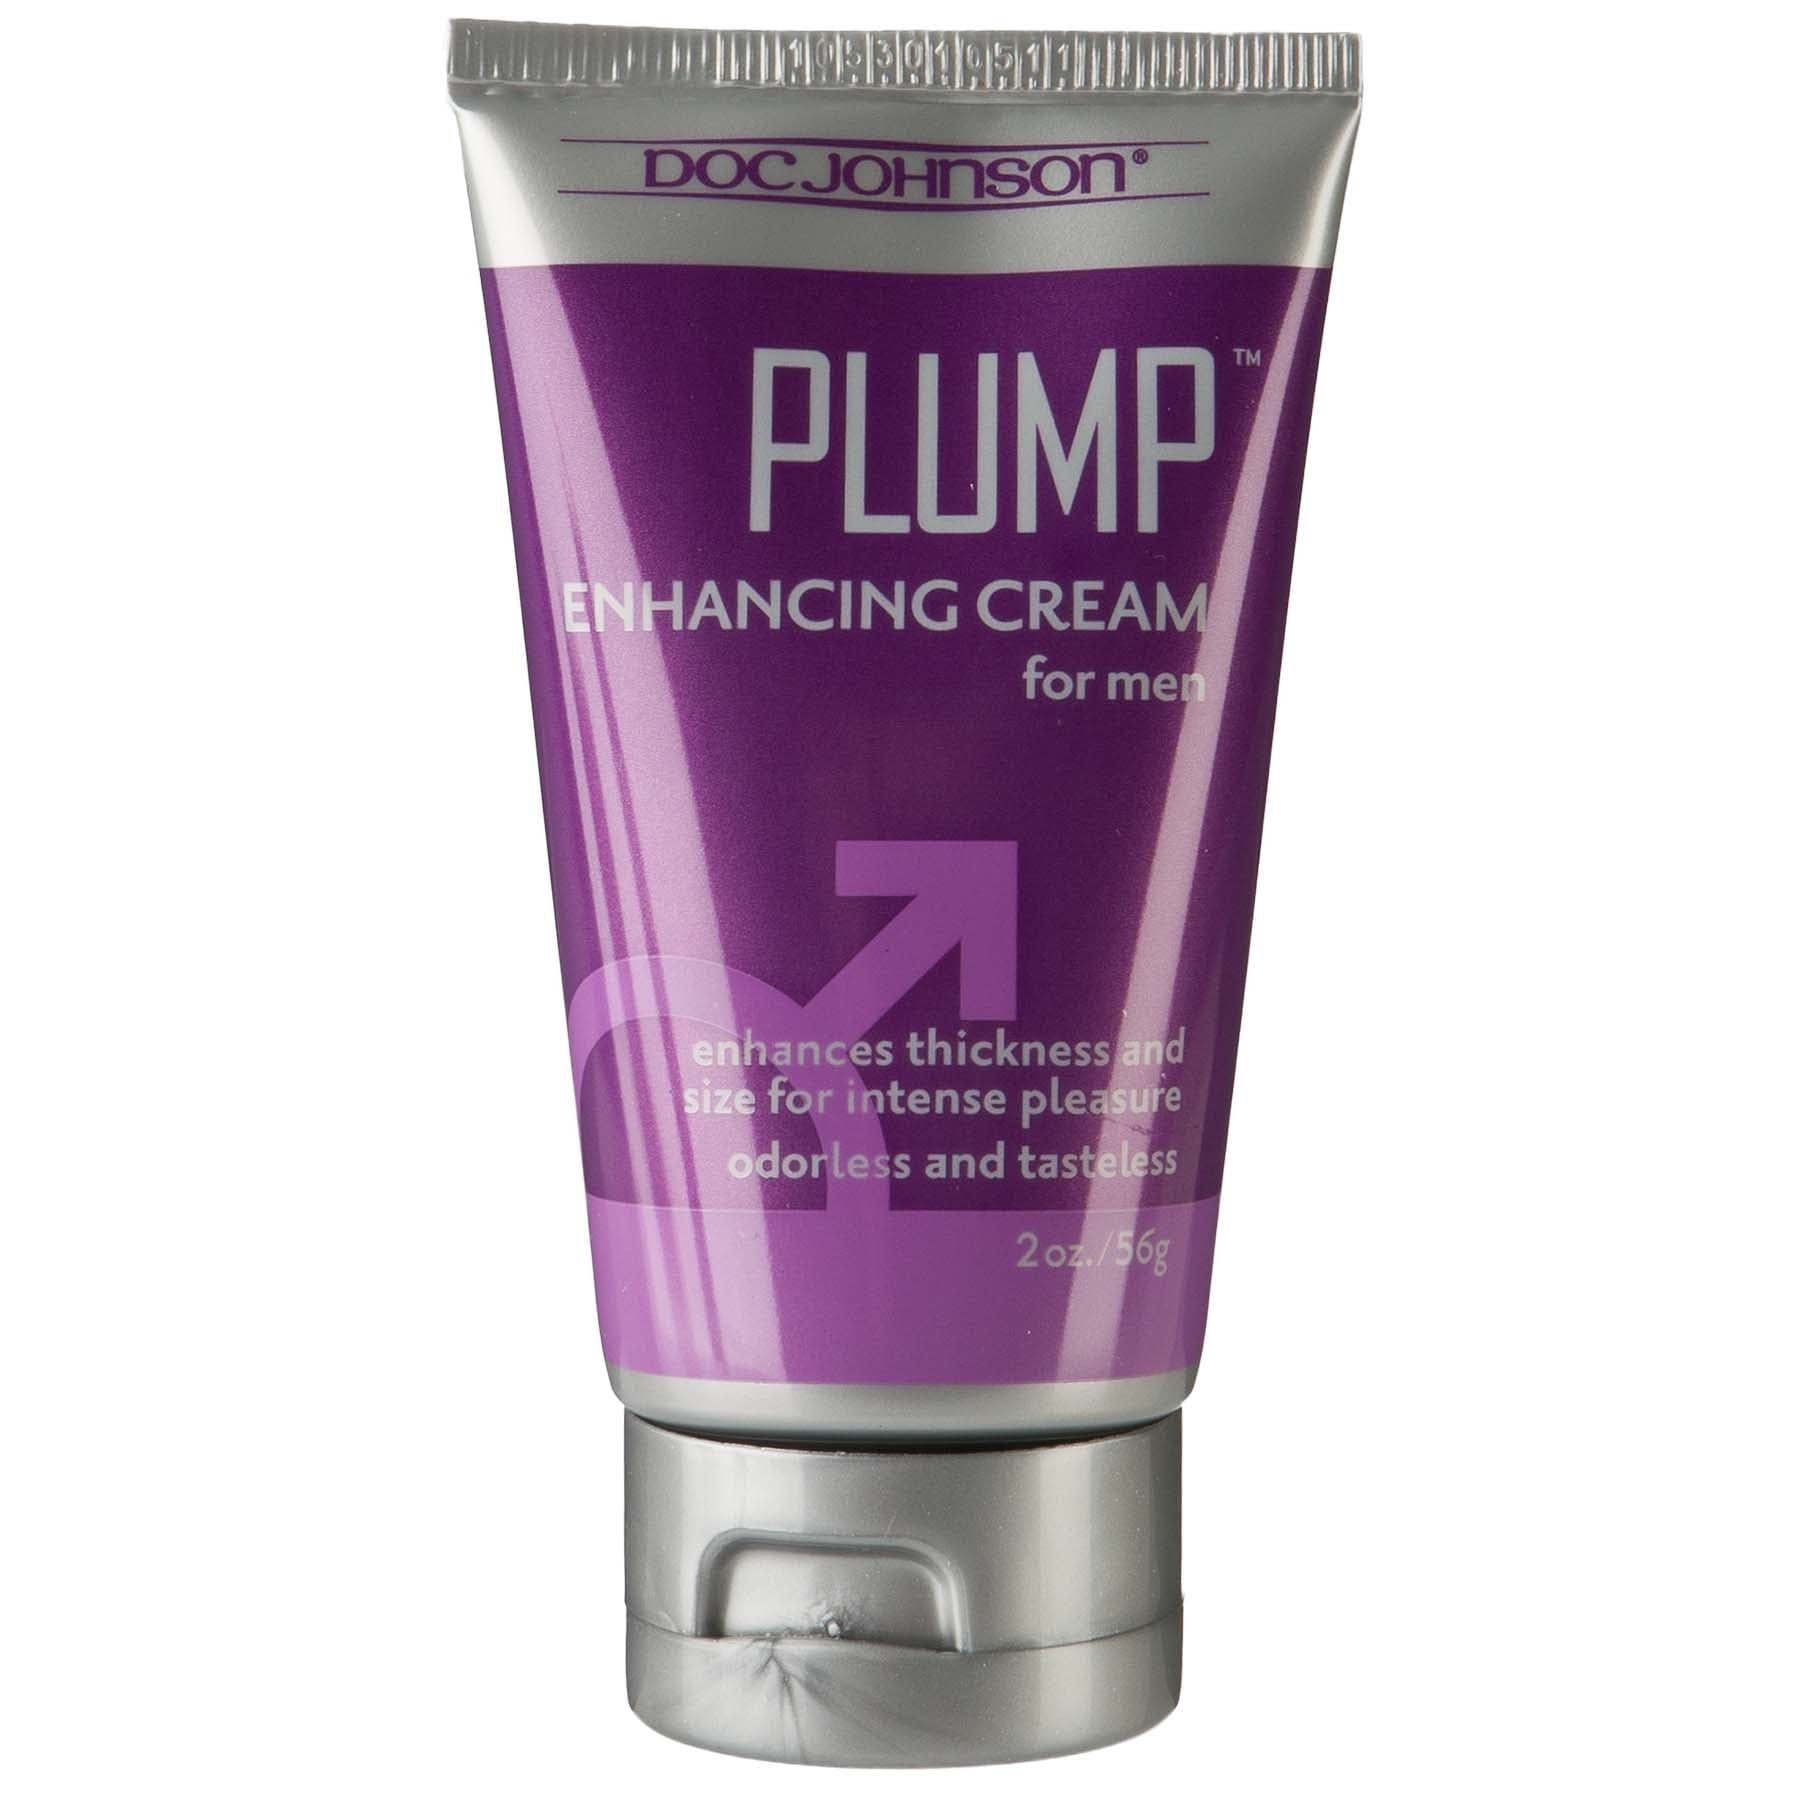 Plump Enhancement Cream by Doc Johnson - rolik